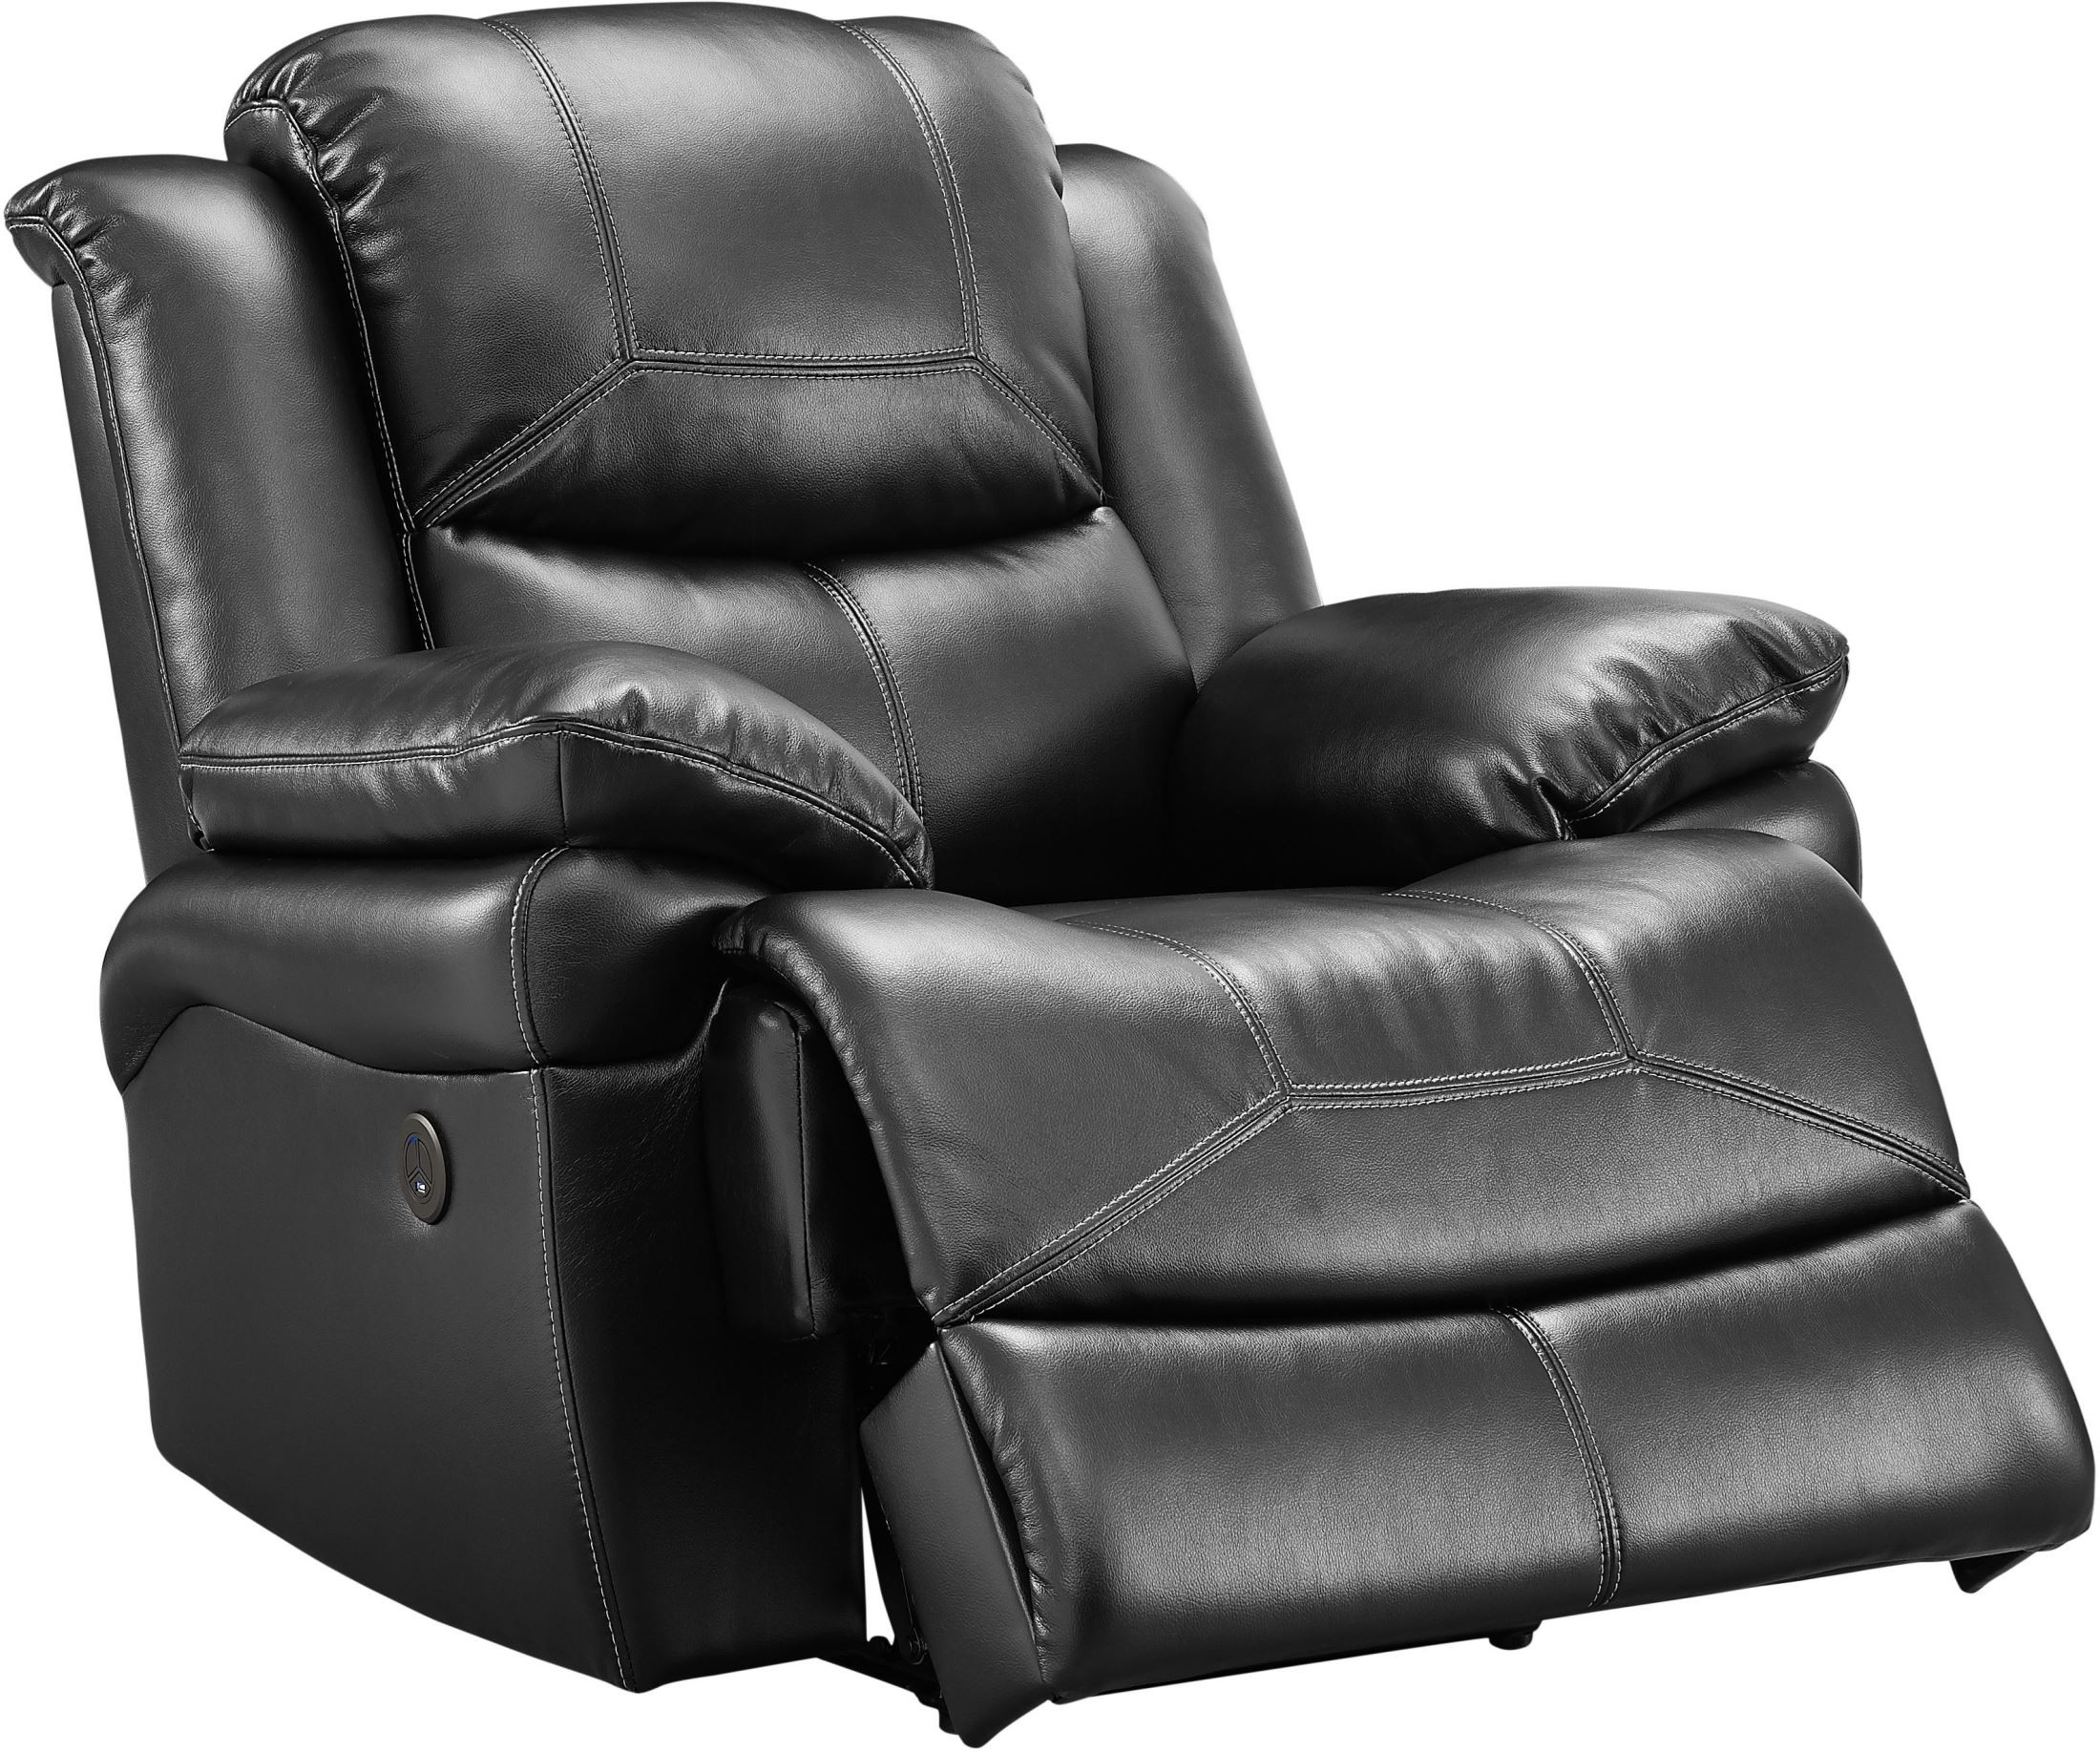 Flynn Premier Black Power Glider Recliner from New Classic